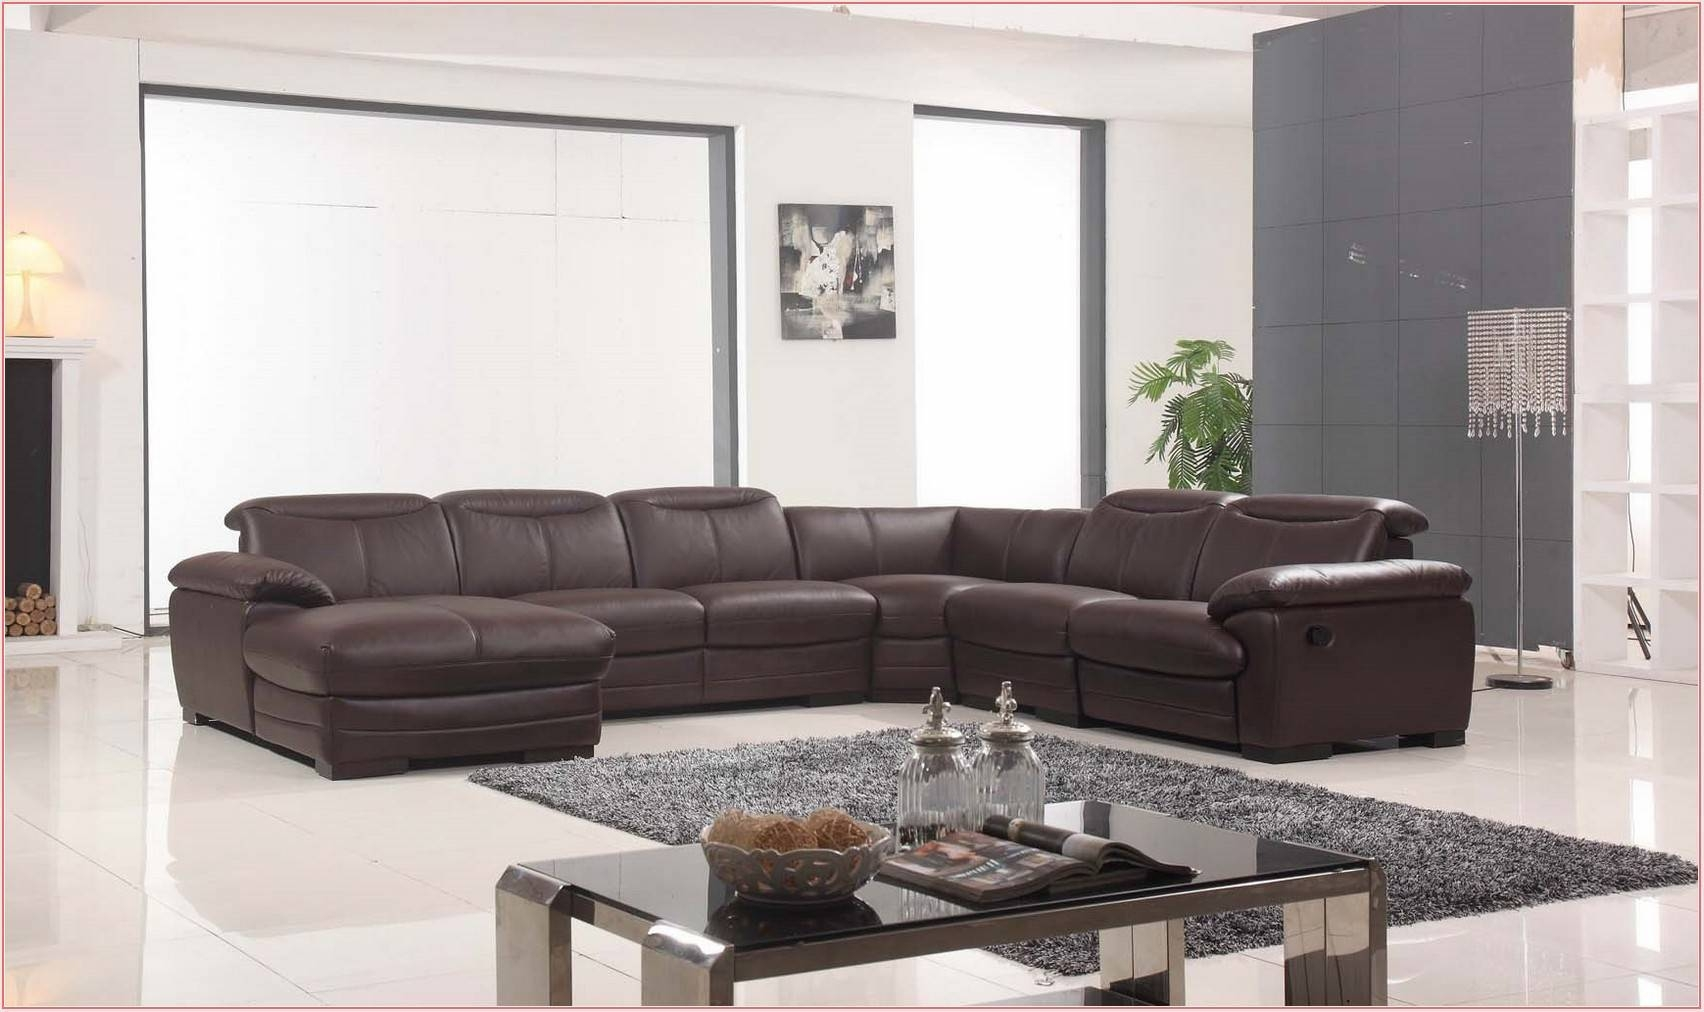 Excellent Abbyson Living Charlotte Beige Sectional Sofa And in Abbyson Sectional Sofa (Image 21 of 30)